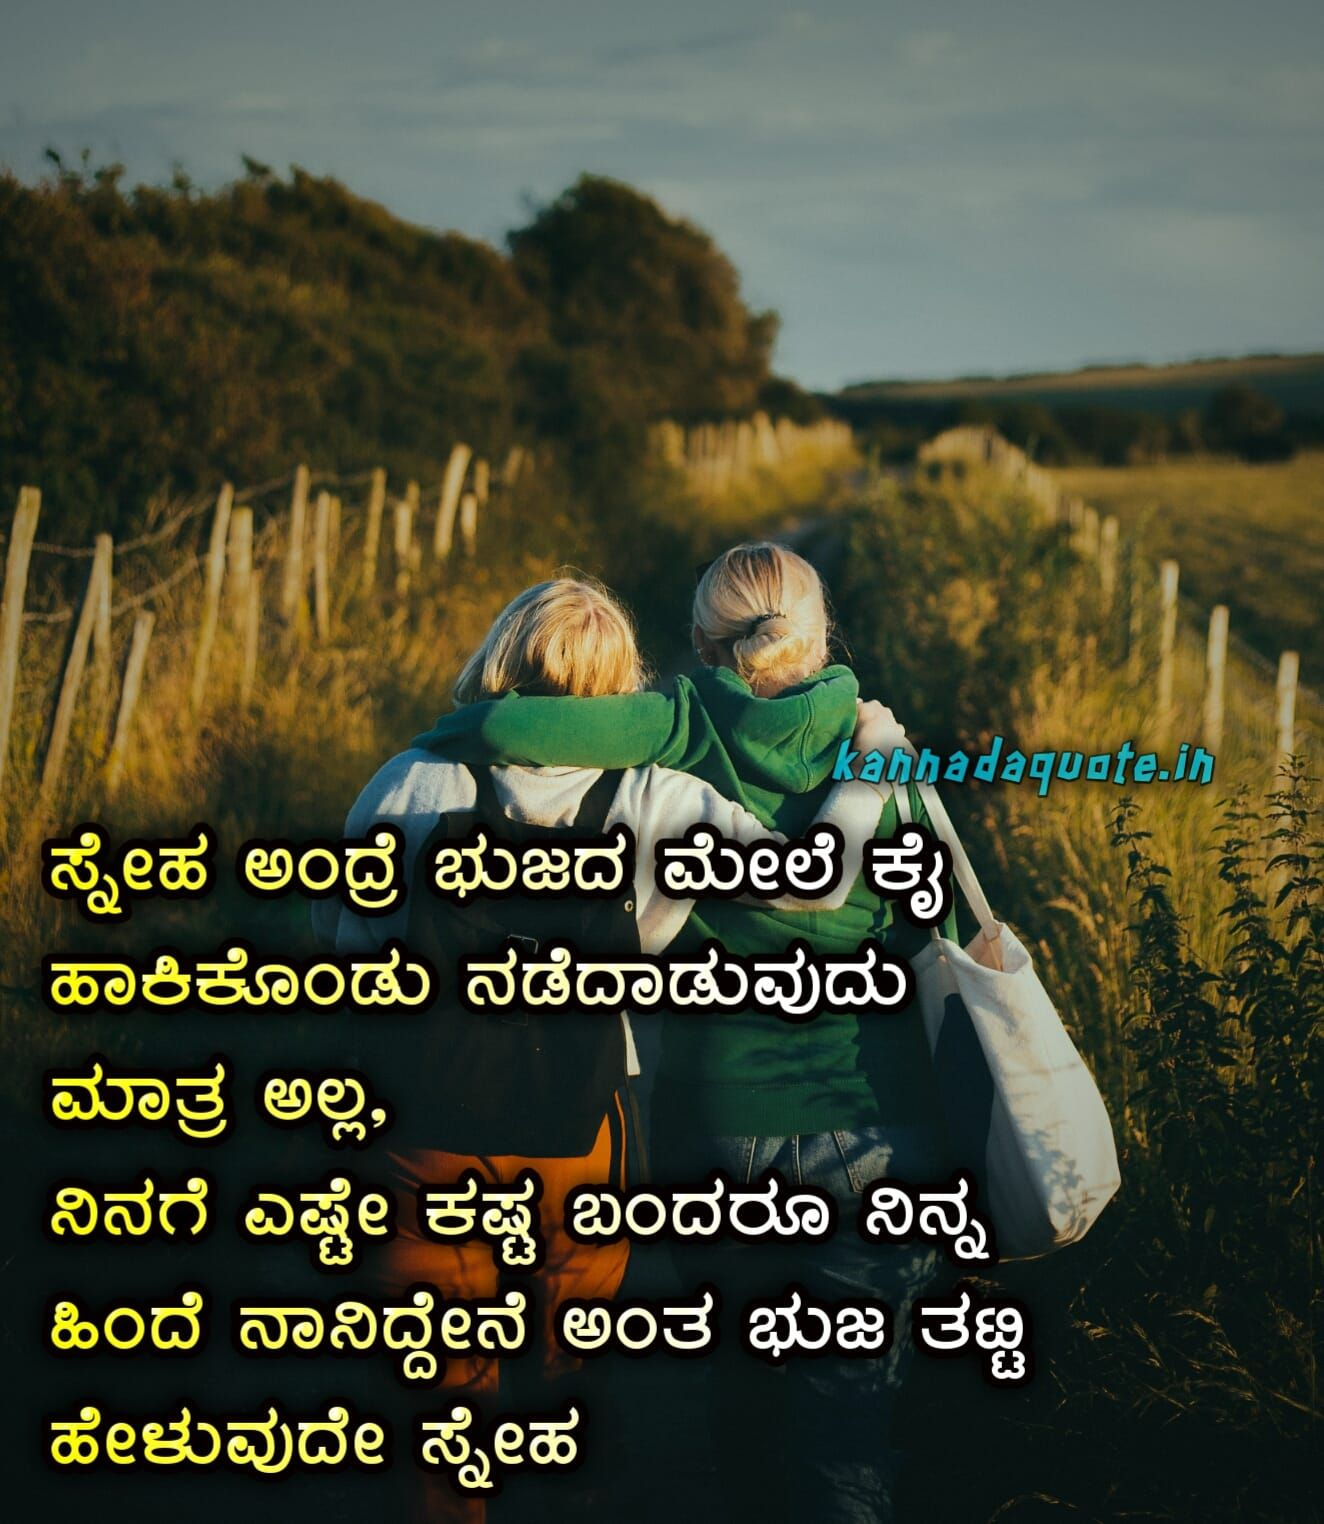 Download 30 Short Friendship Quotes In Kannada With Images 2020 Short Friendship Quotes Friendship Quotes Meaningful Friendship Quotes